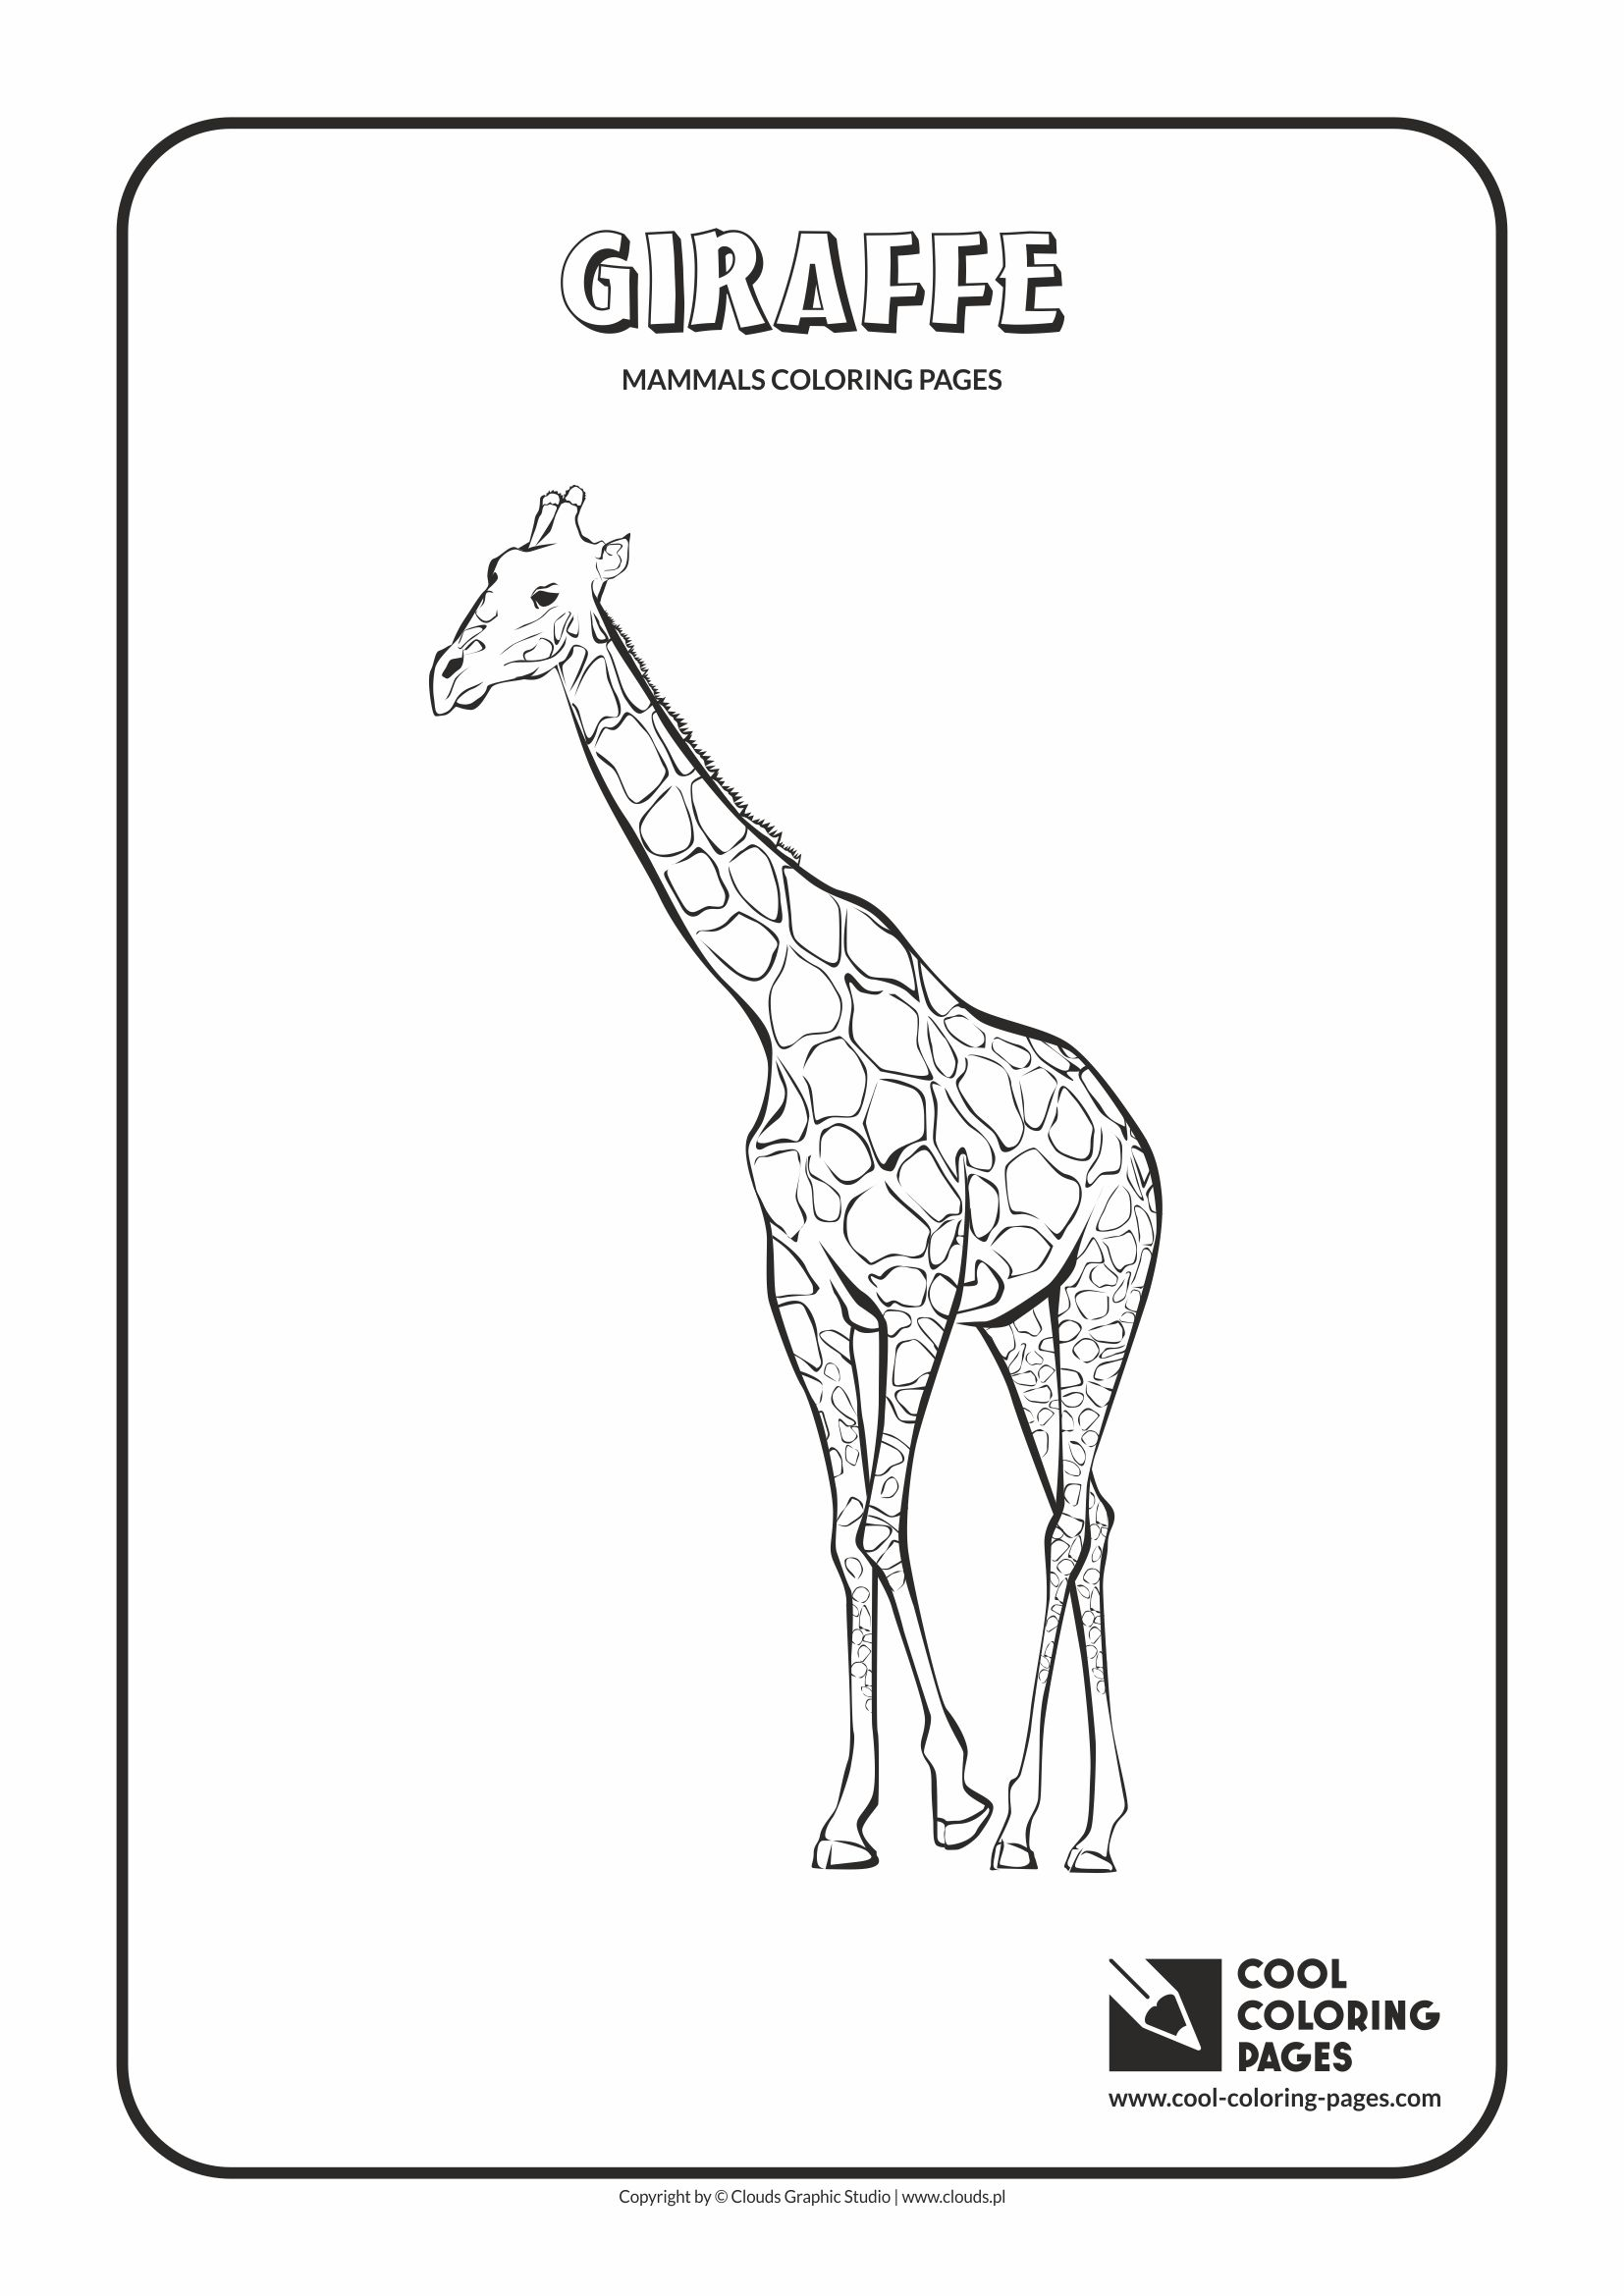 Cool Coloring Pages Giraffe Coloring Page Cool Coloring